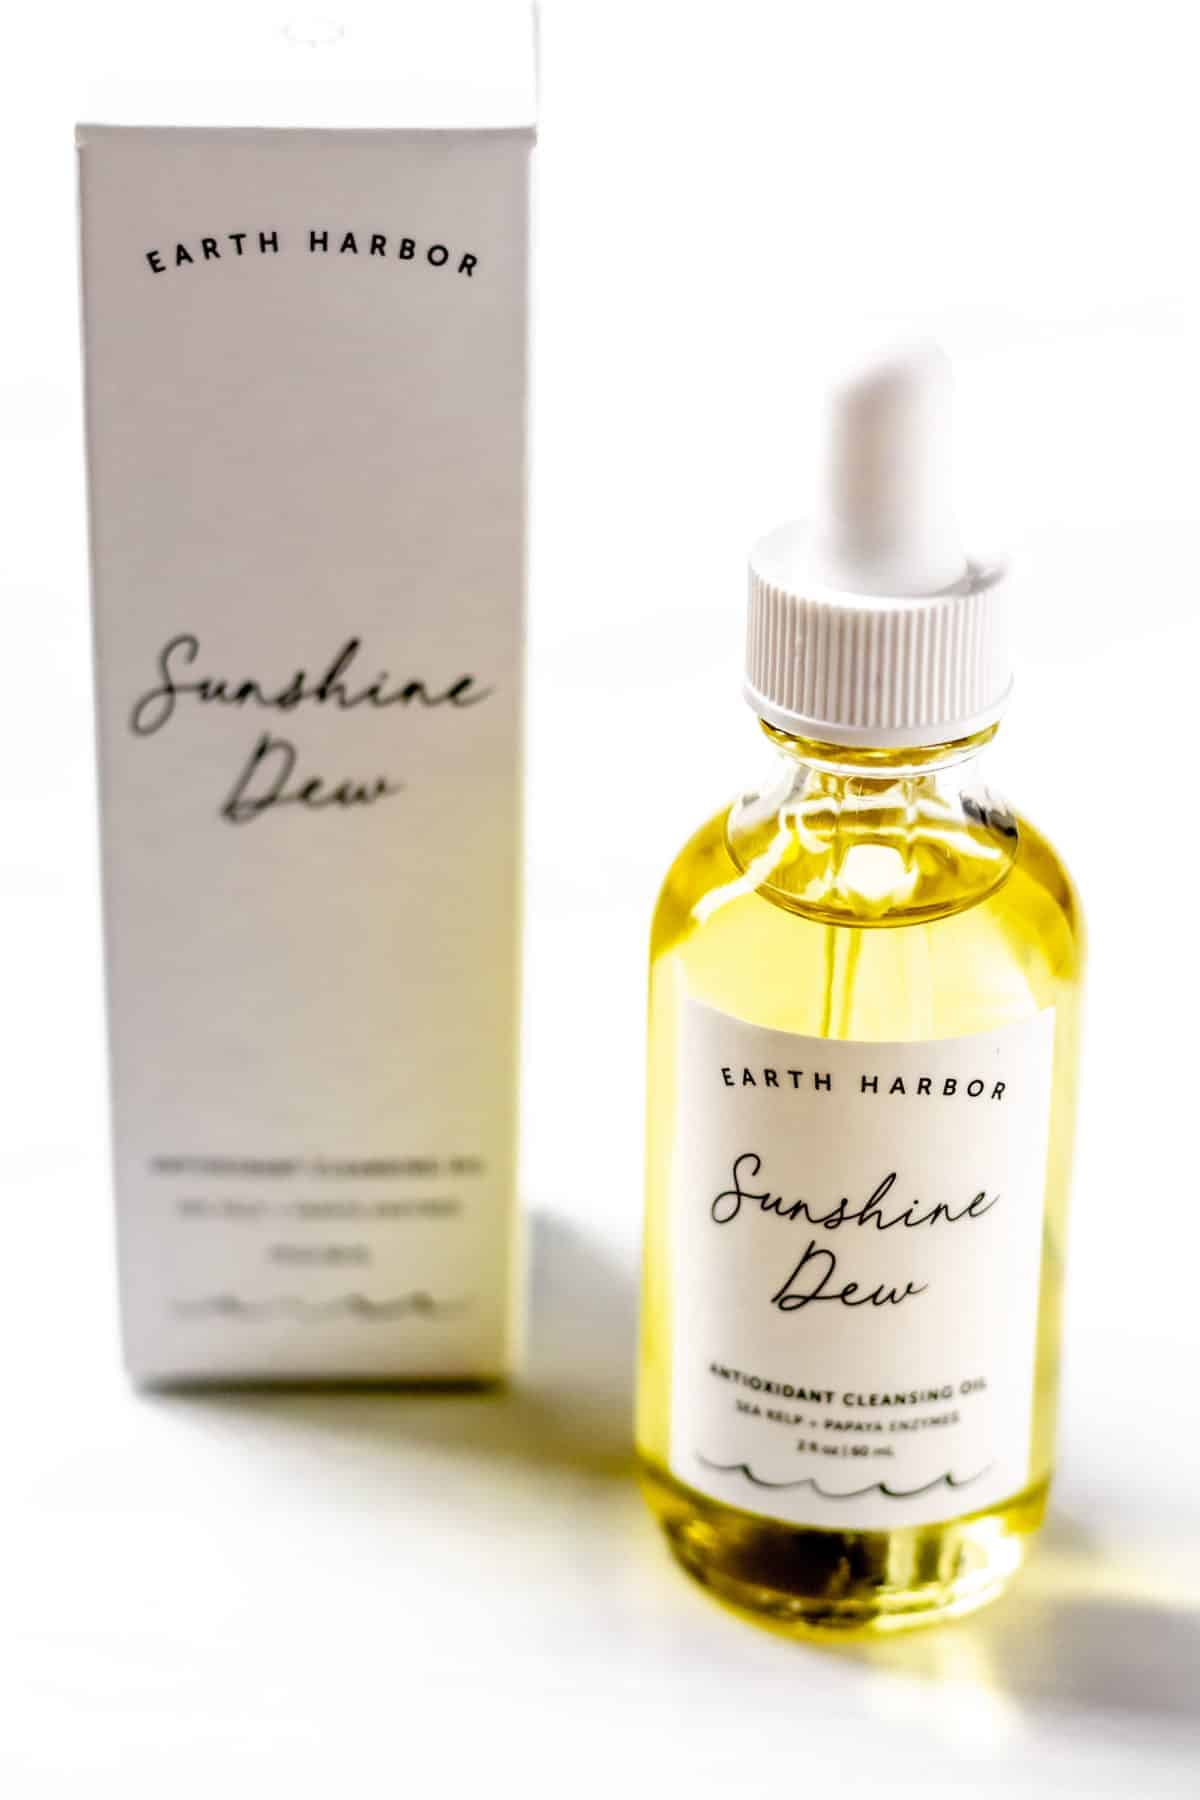 Earth Harbor Naturals Sunshine Dew Antioxidant Cleansing Oil bottle and box on a white background